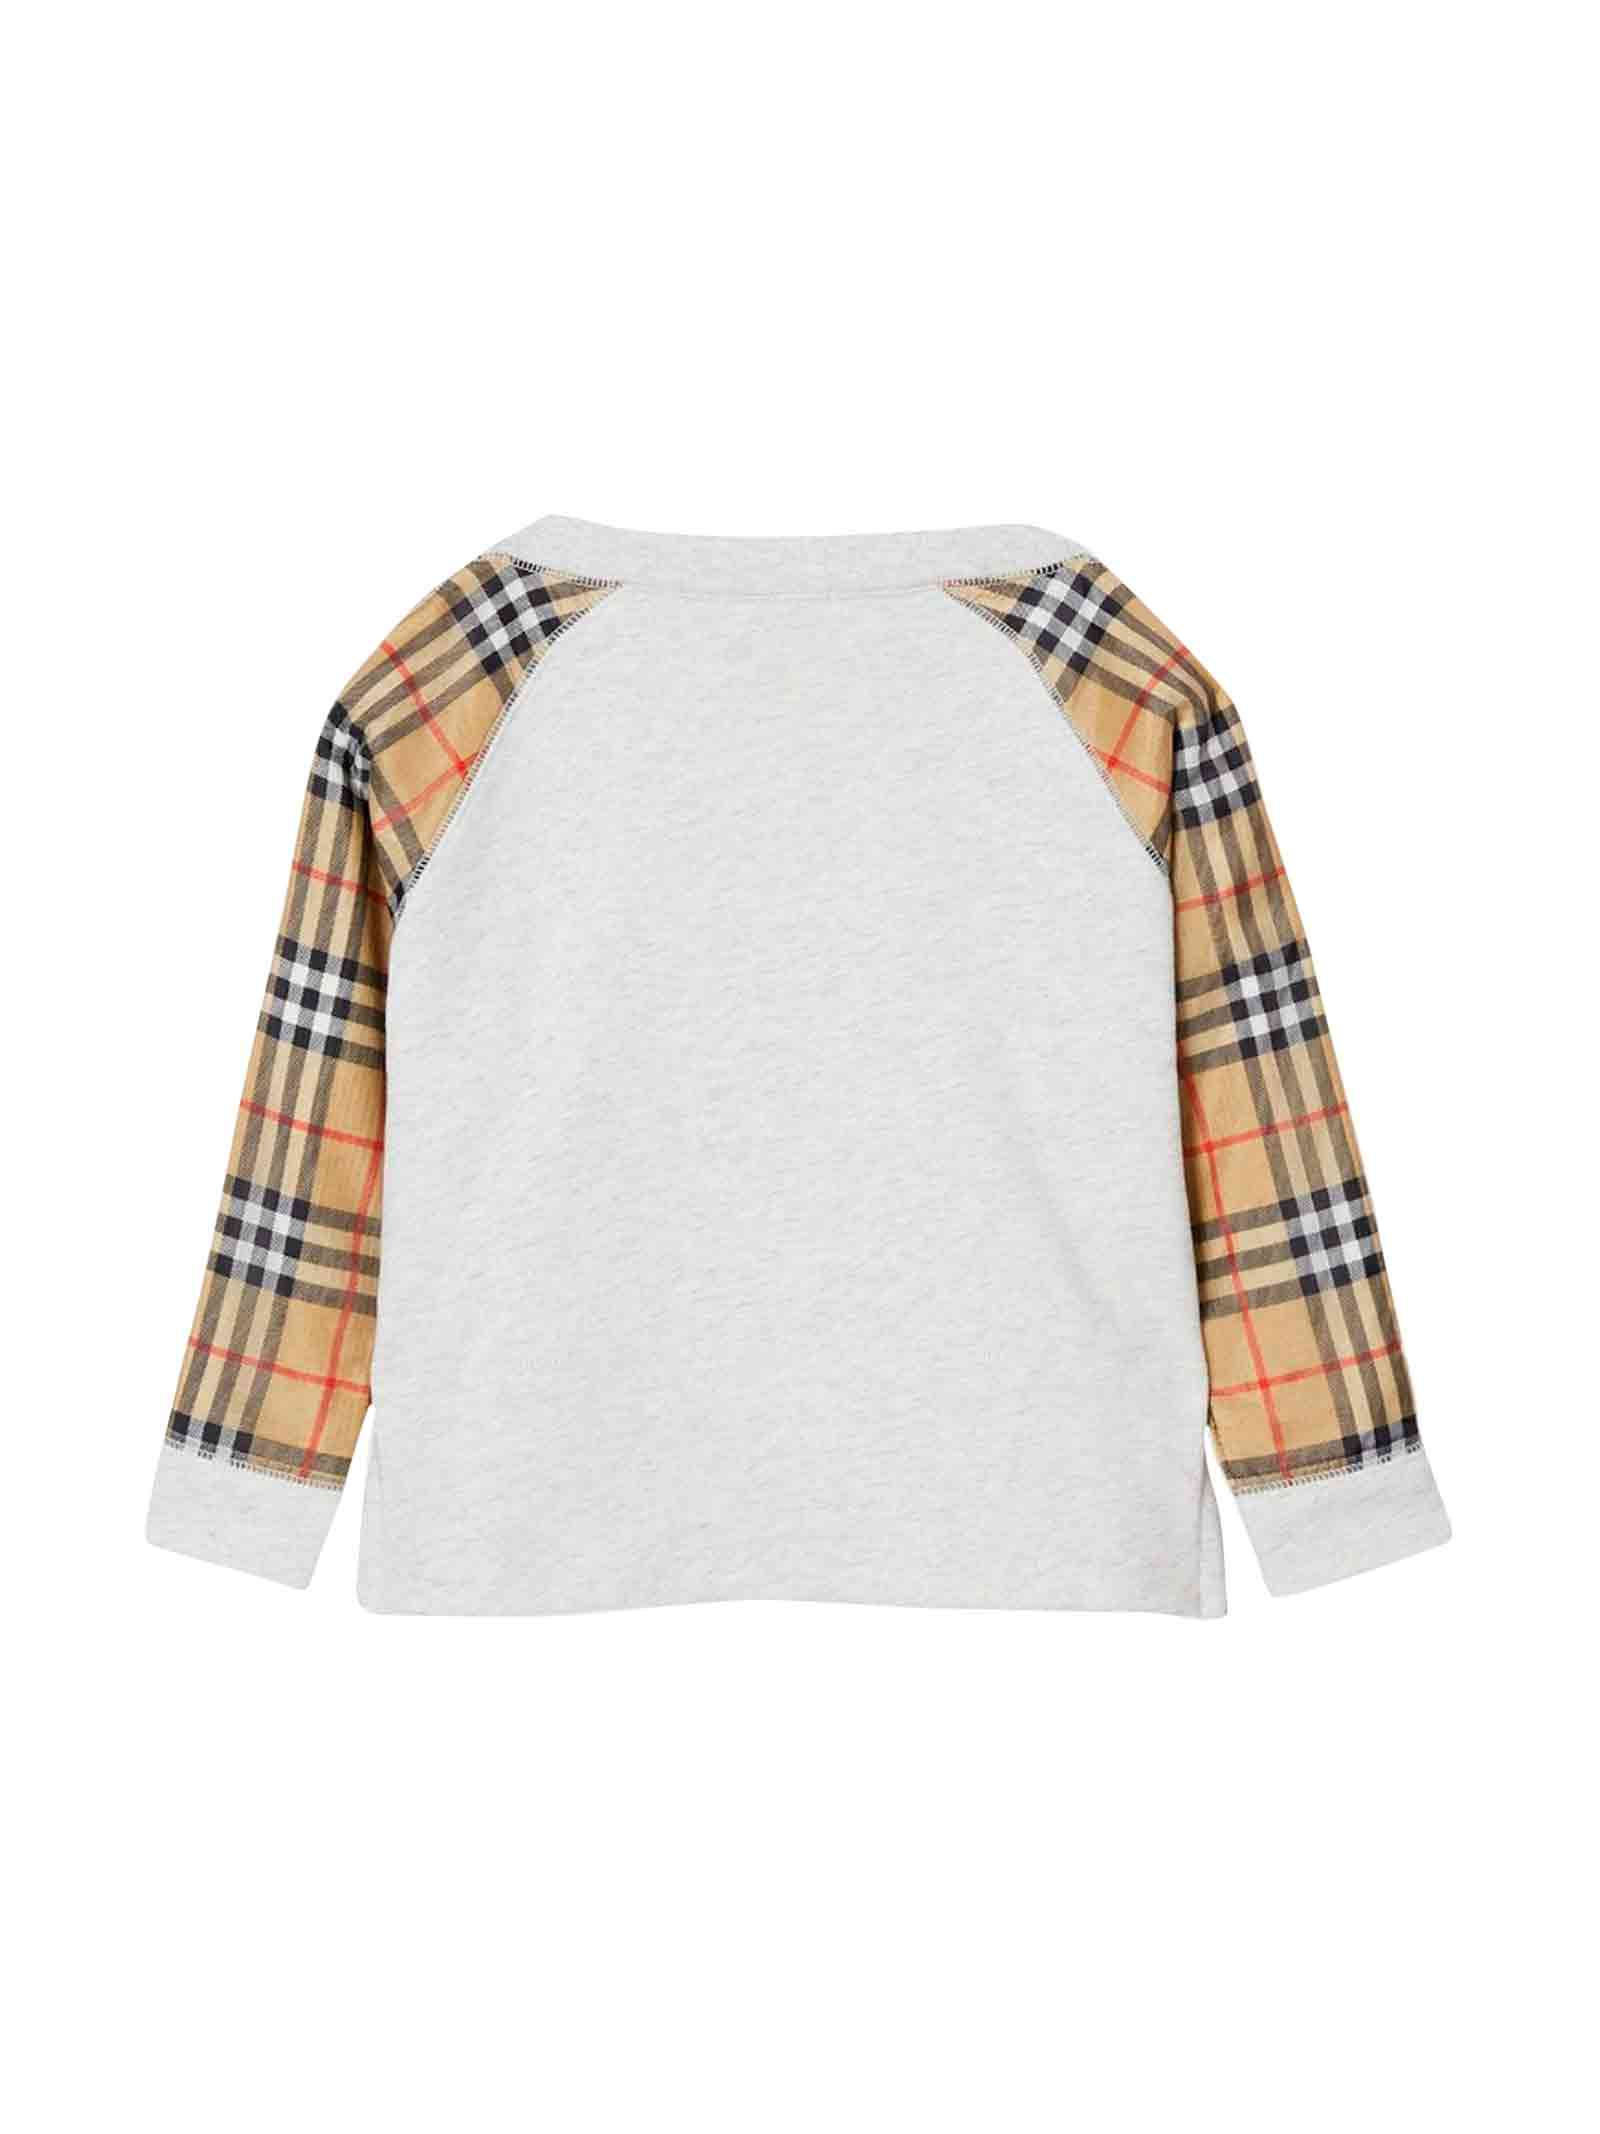 Burberry kids white sweatshirt  BURBERRY KIDS | -108764232 | 8011011A4807